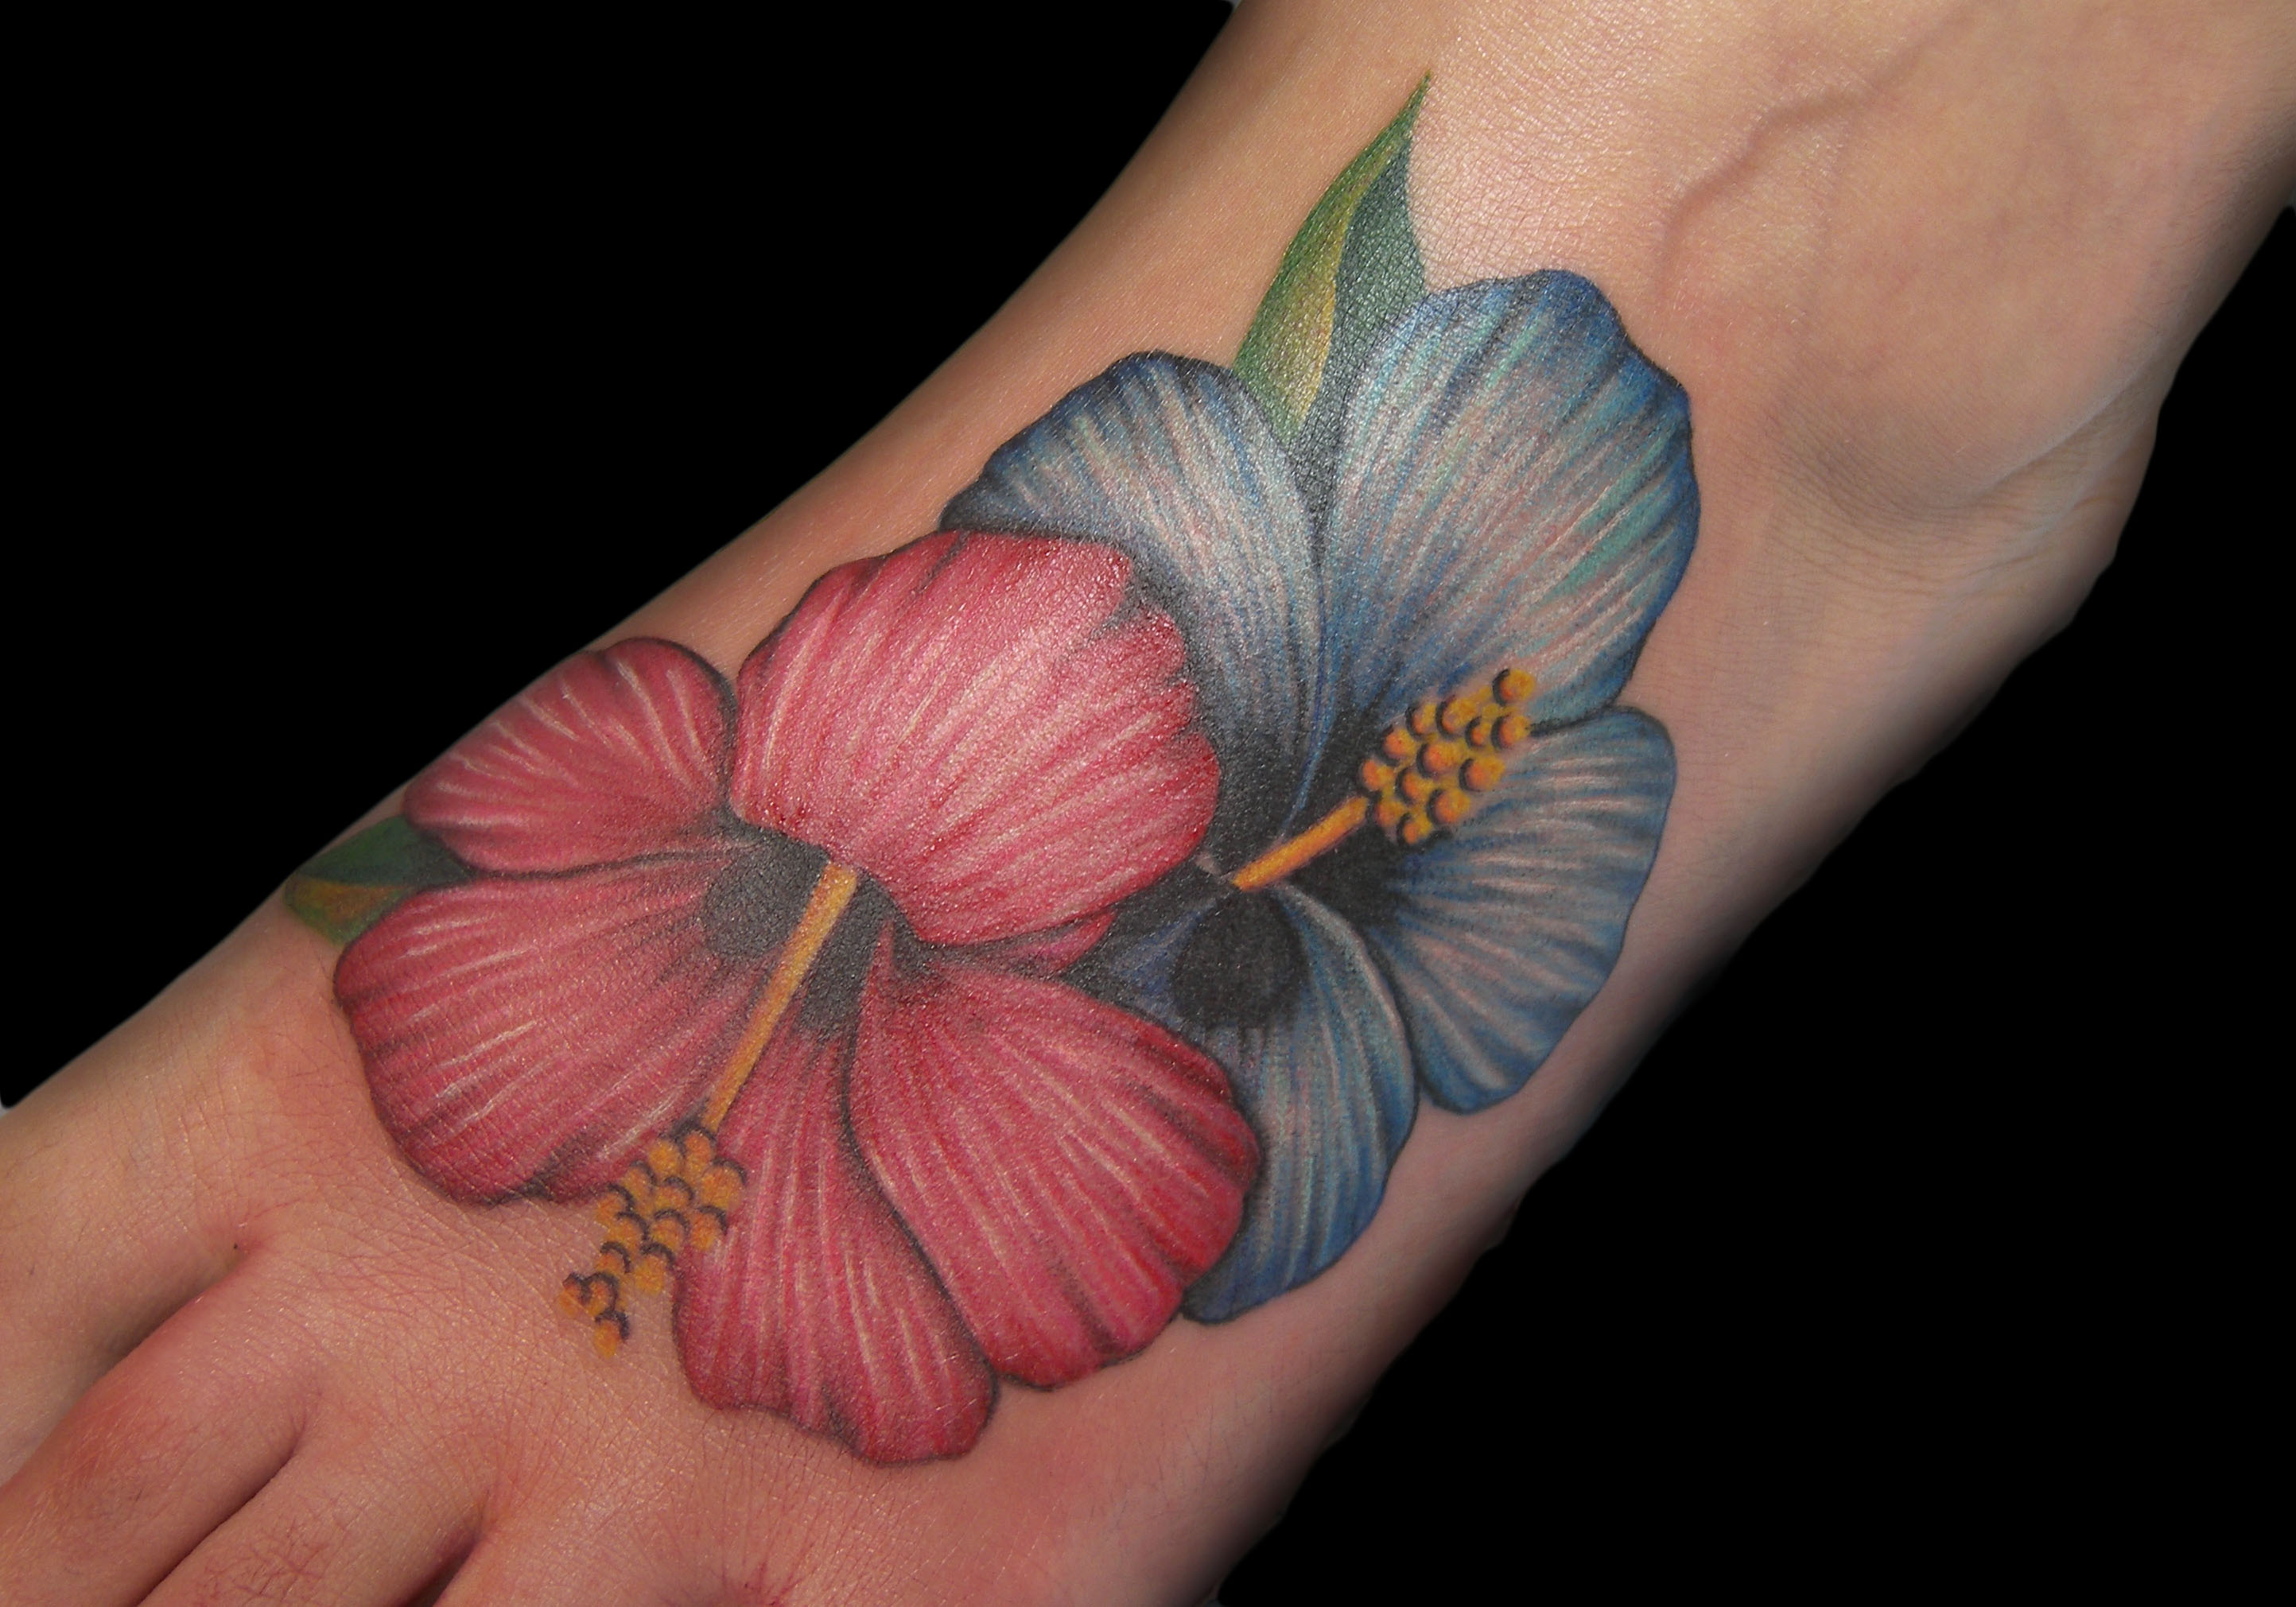 37 hibiscus flowers tattoos on foot realistic hibiscus flowers tattoo on foot izmirmasajfo